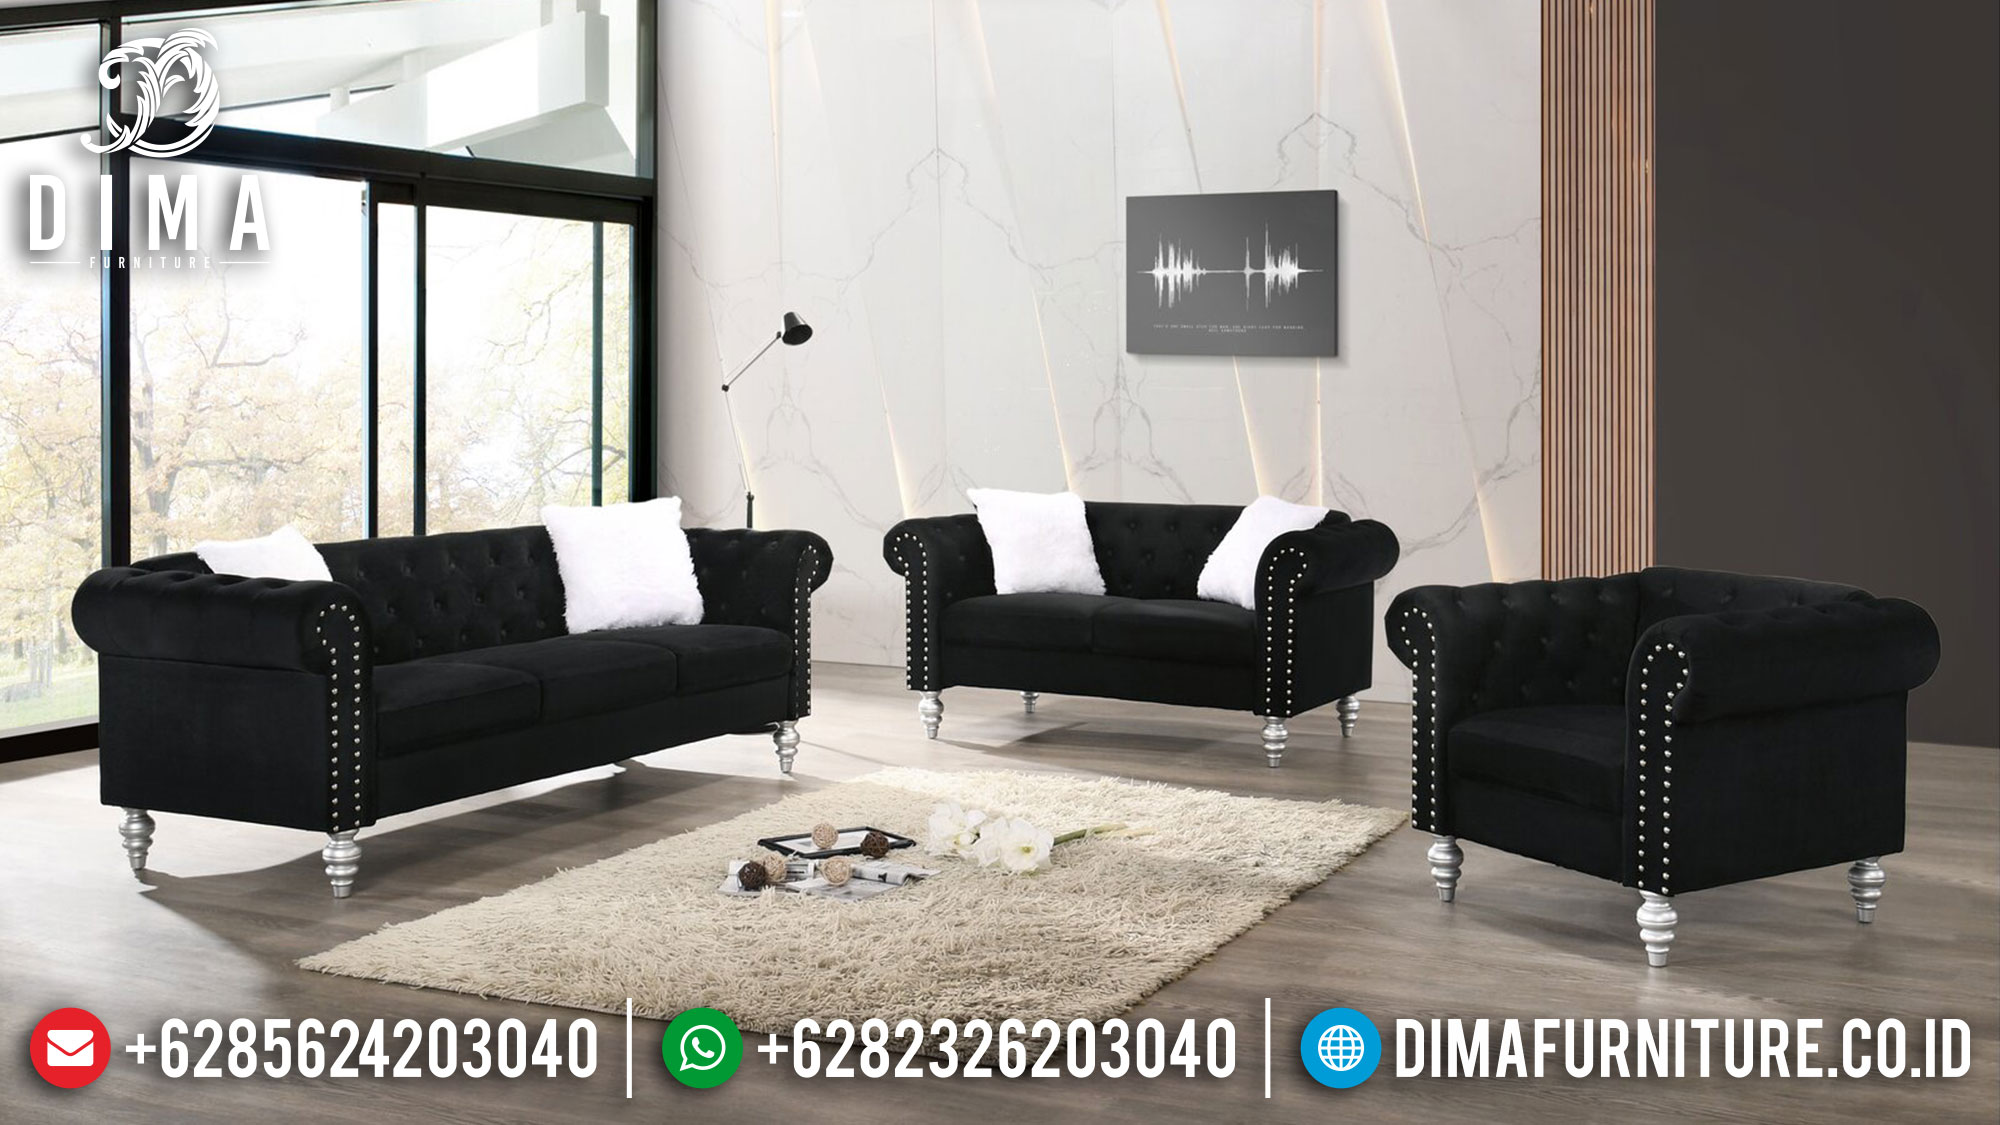 Jual Sofa Tamu Minimalis Luxury Design Furniture Jepara Royals Classic Ttj-1484